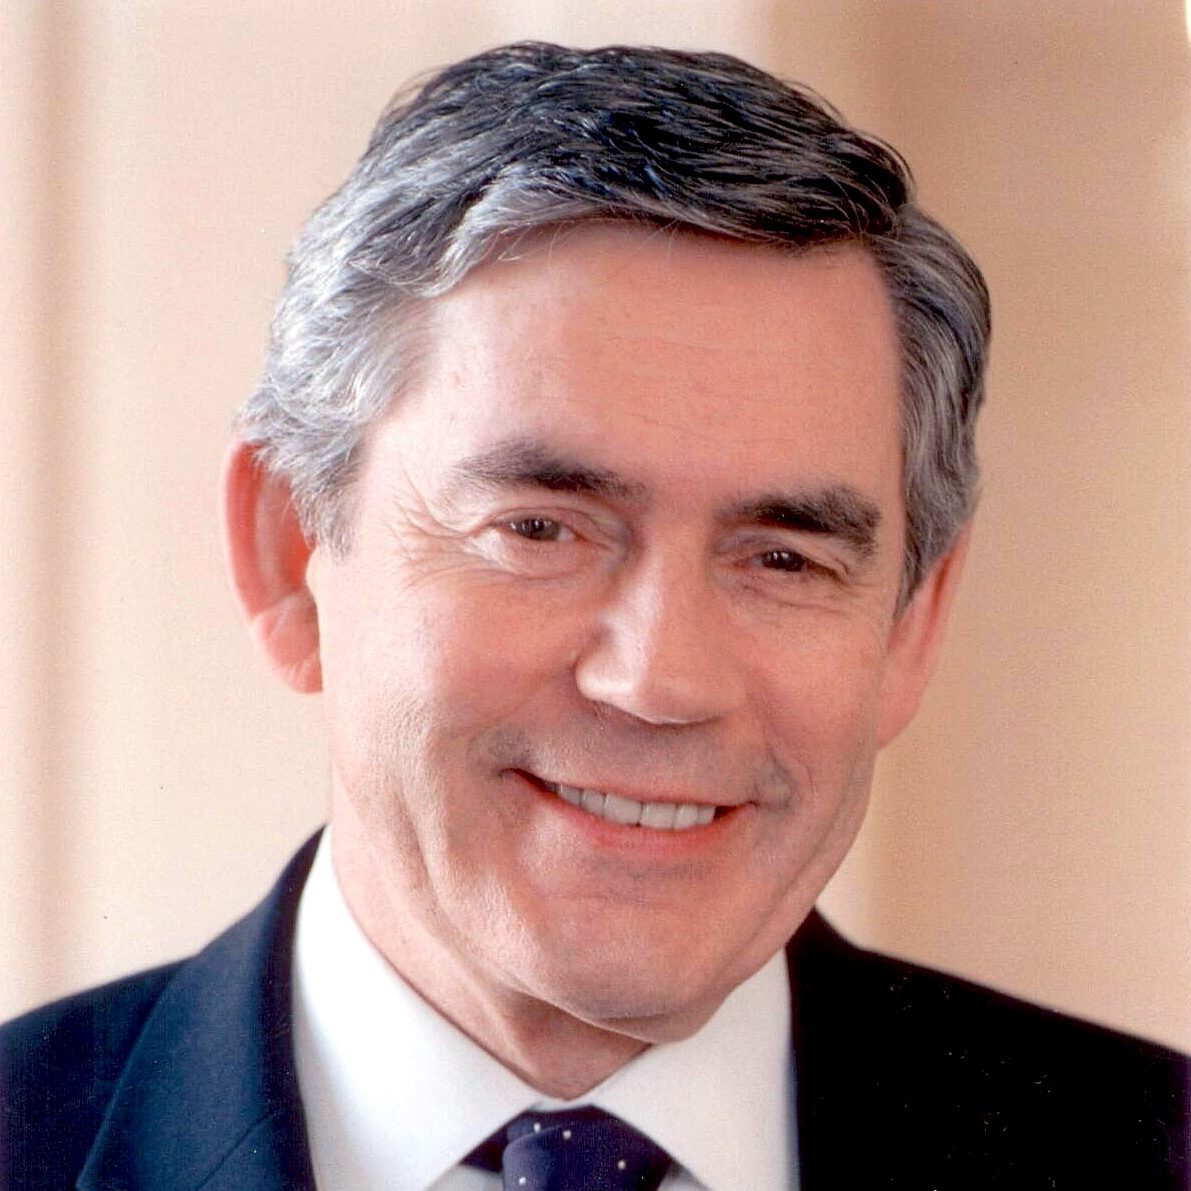 Enterprising Mindsets: A Breakfast Conversation with Gordon Brown